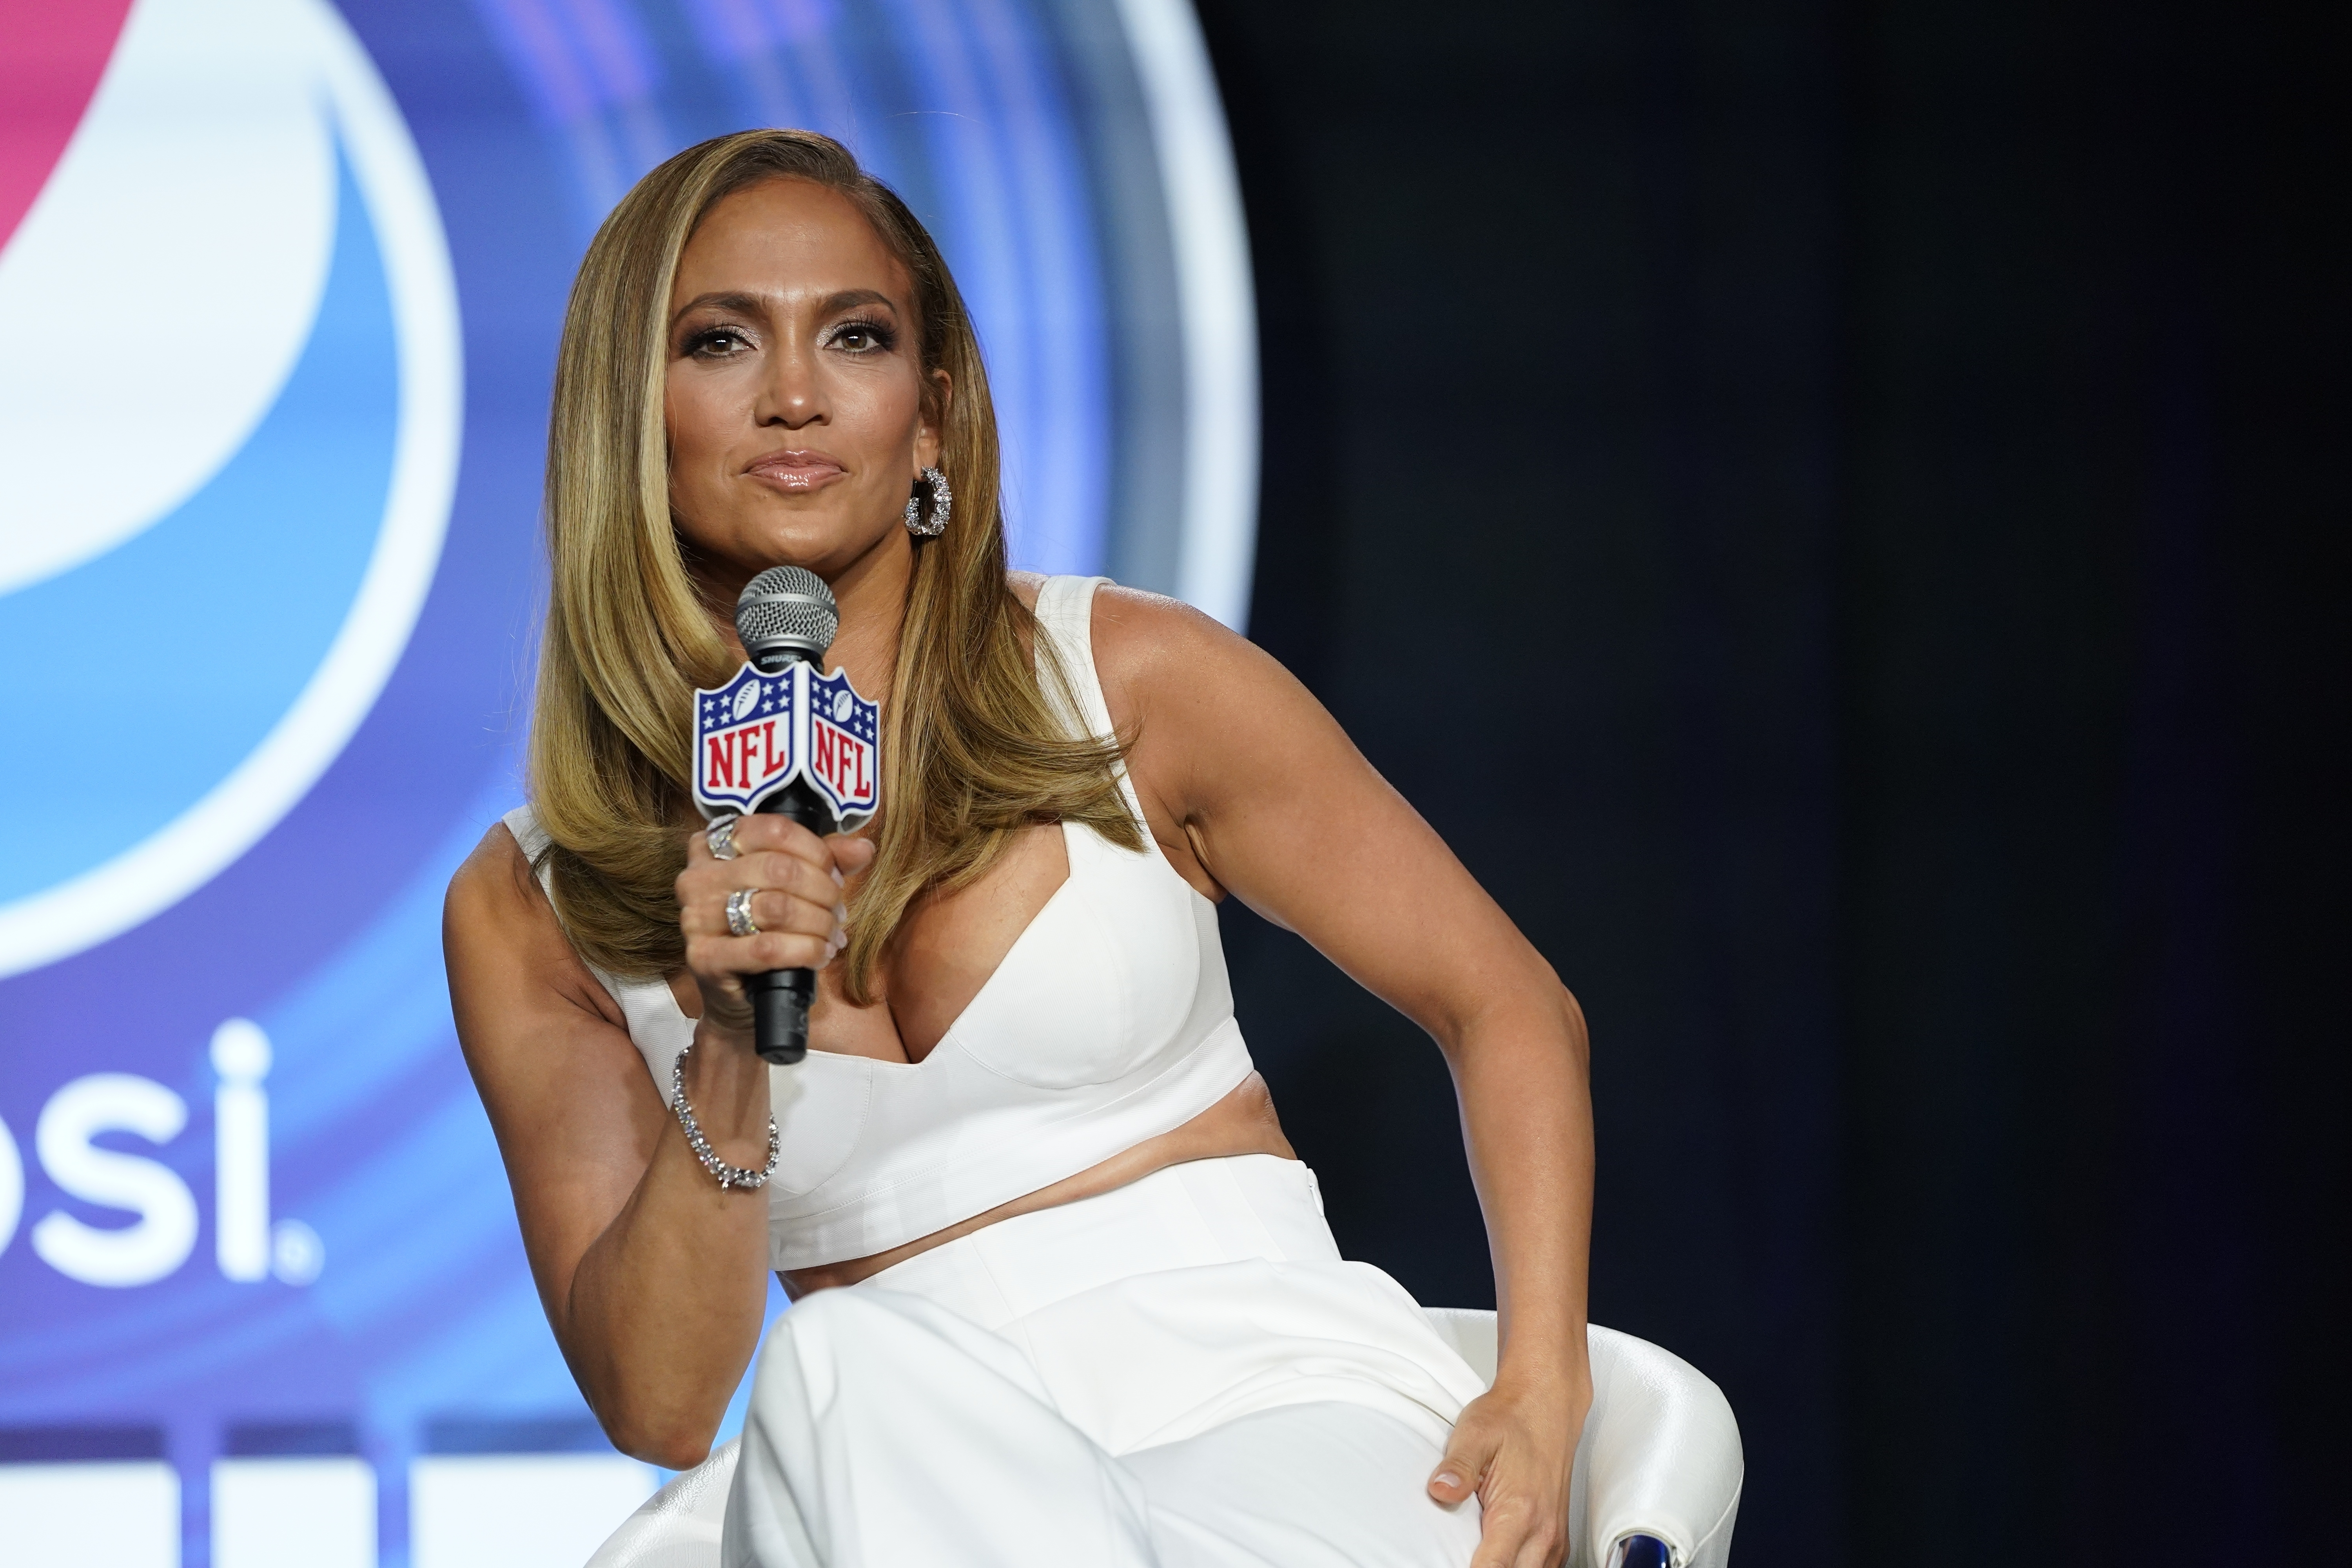 In this Jan. 30, 2020 file photo, NFL Super Bowl 54 football game halftime performer Jennifer Lopez answers questions at a news conference in Miami.